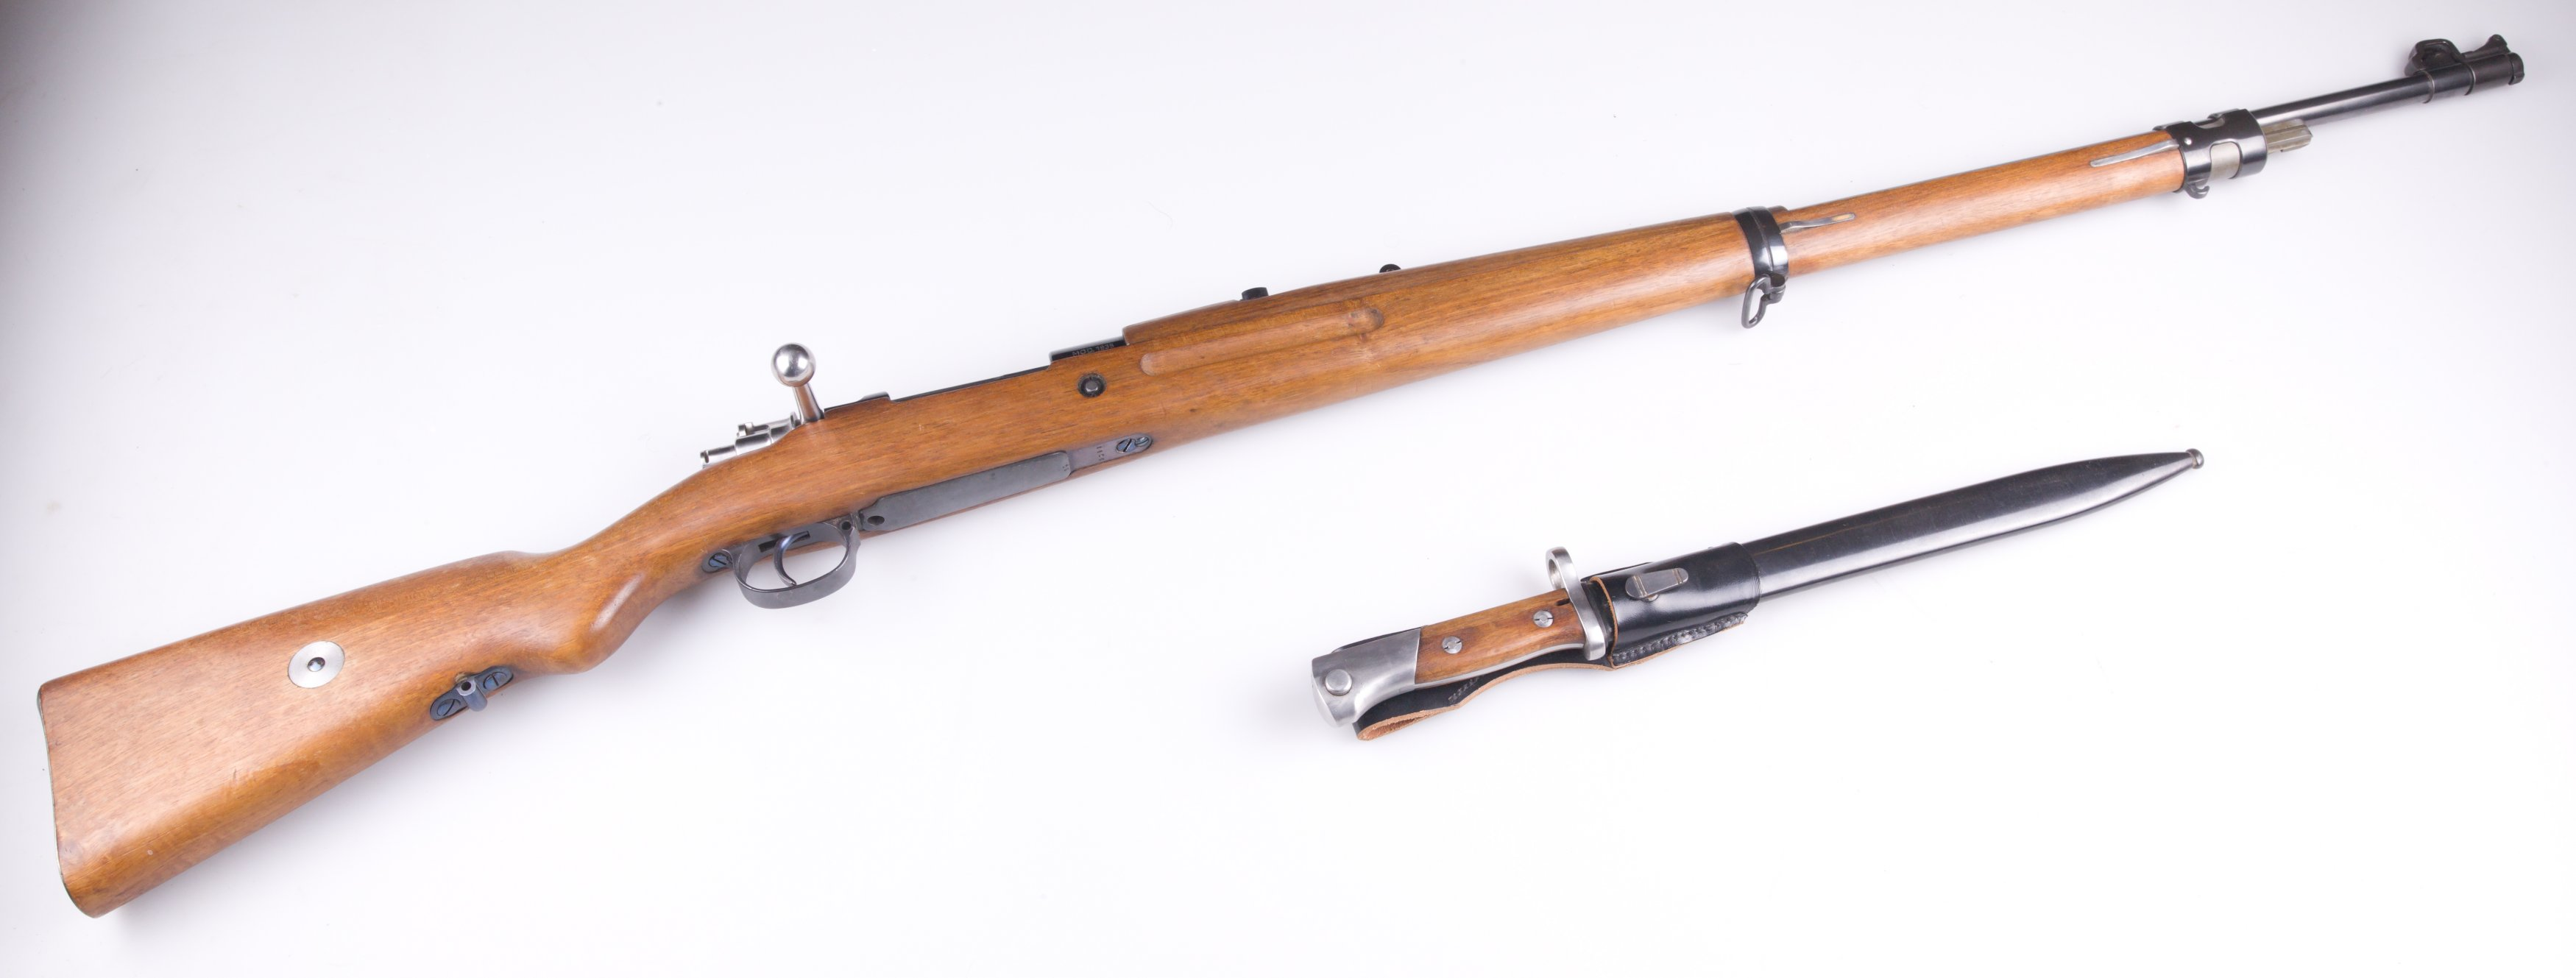 Click image for larger version.  Name:7mmMauser01.jpg Views:17 Size:219.2 KB ID:874577